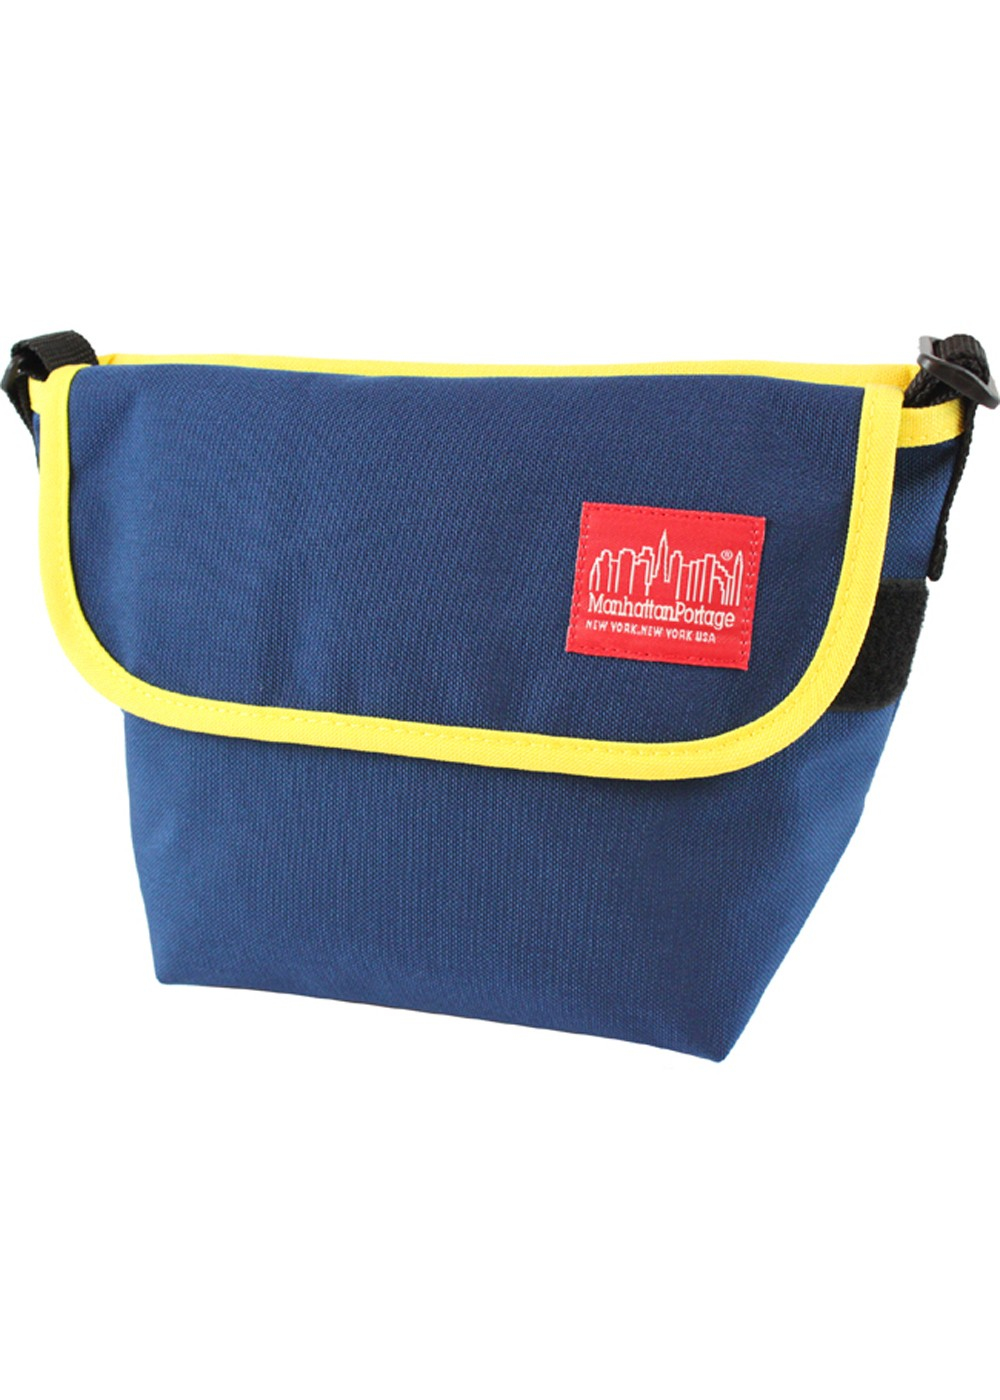 Casual Messenger Bag|ネイビー/YEL|メッセンジャーバッグ|Manhattan Portage